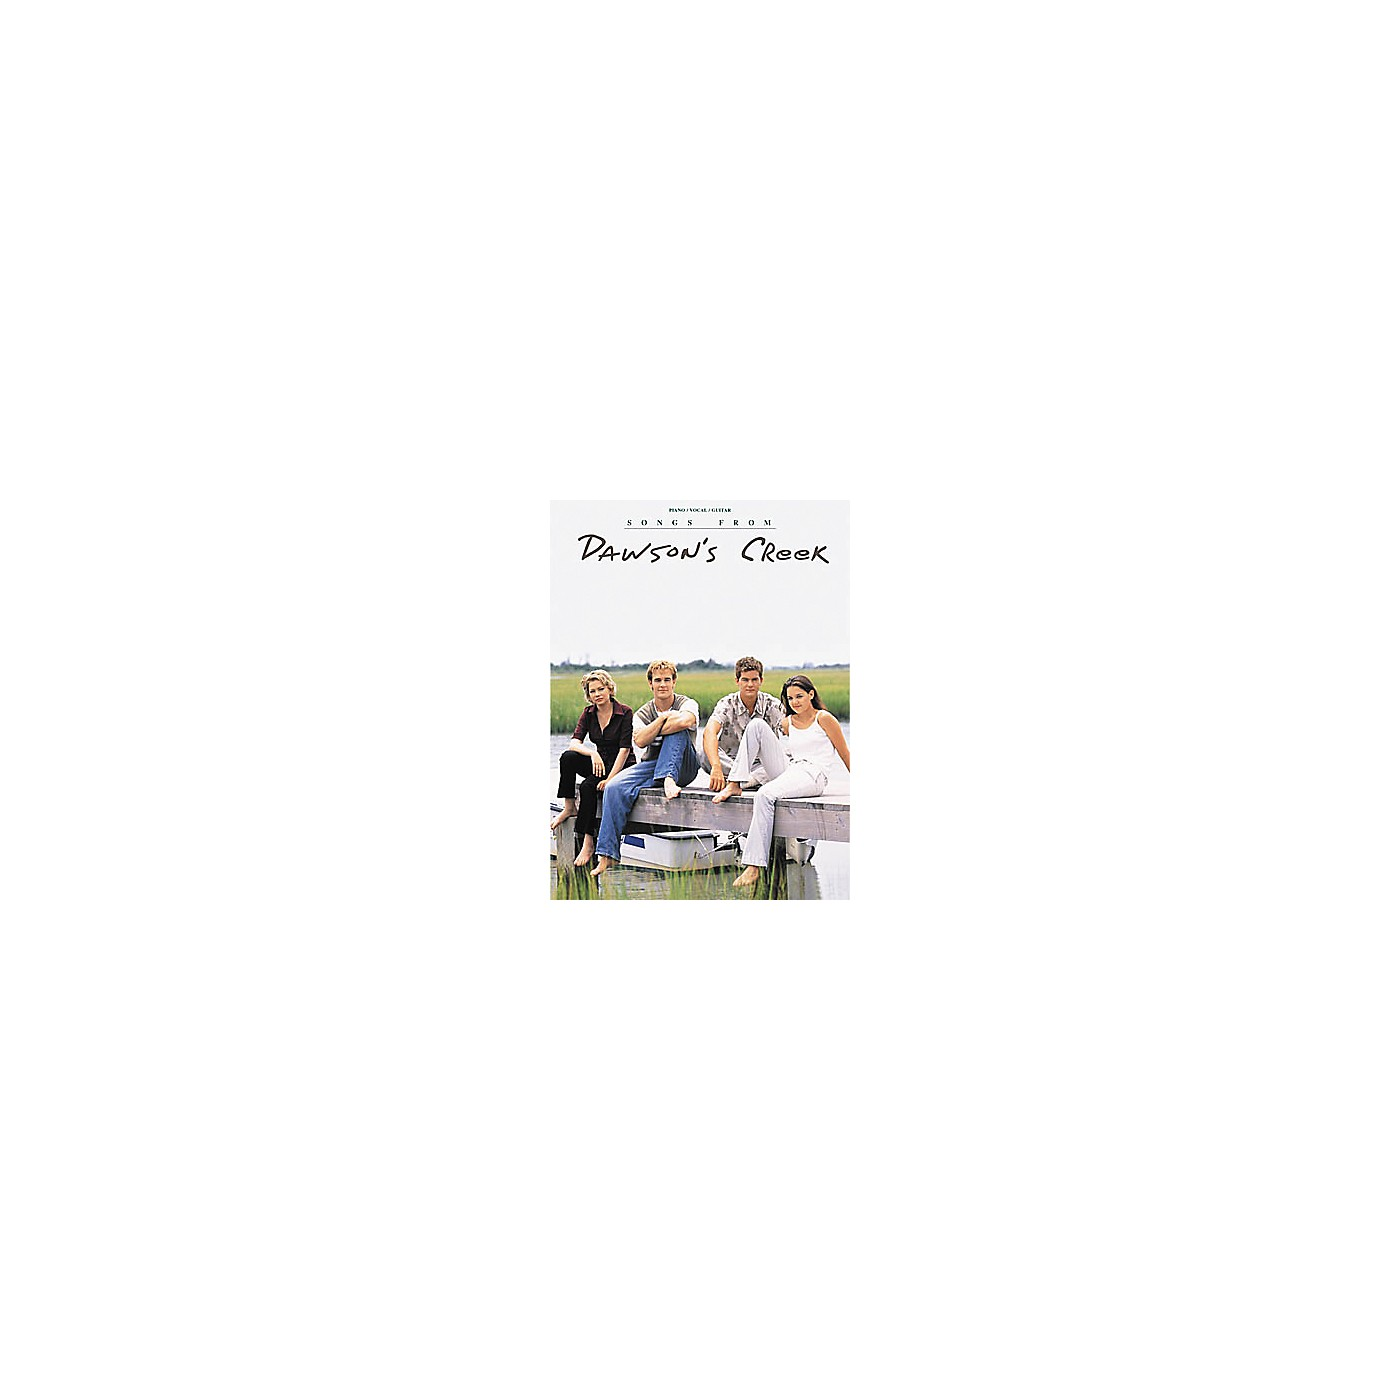 Hal Leonard Songs from Dawson's Creek Piano, Vocal, Guitar Songbook thumbnail